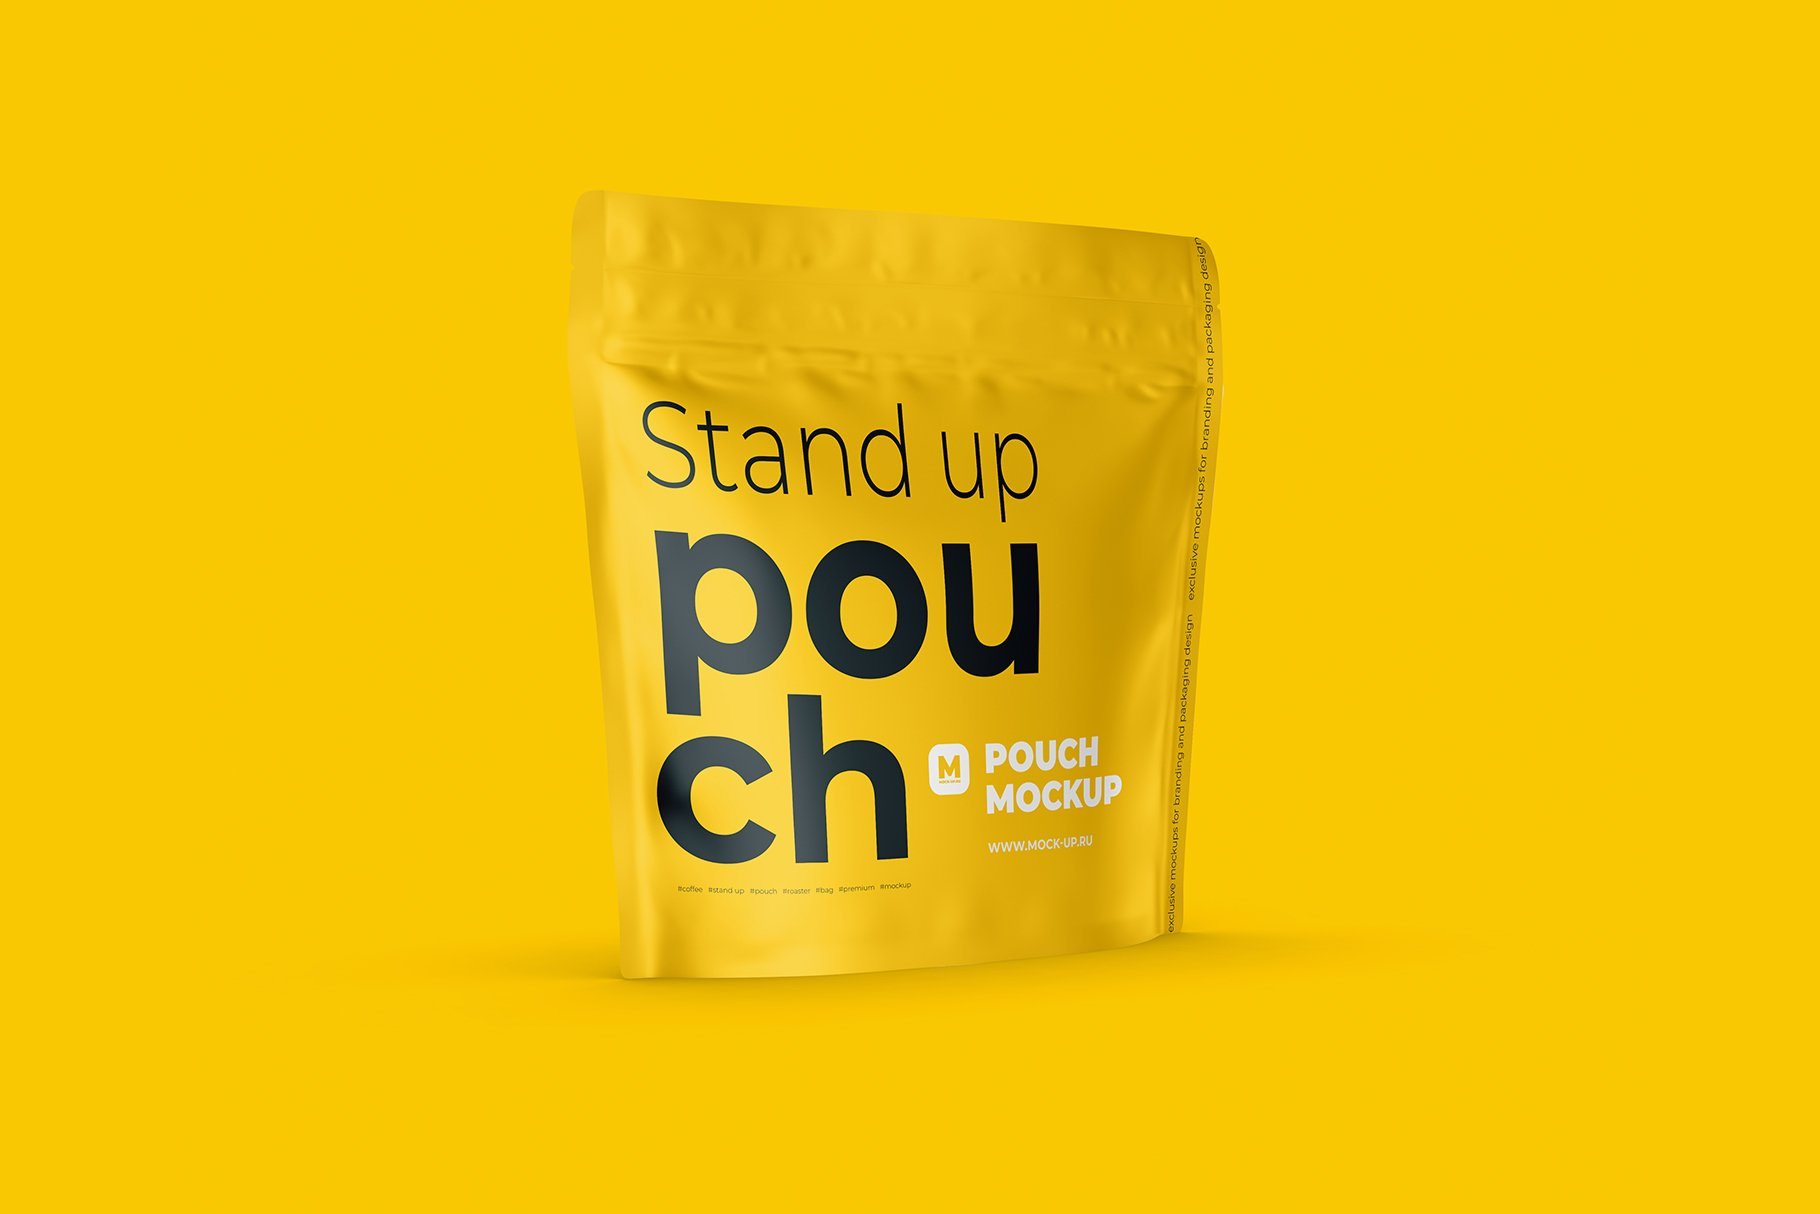 Zip Stand-up Pouch Mockup square example image 5